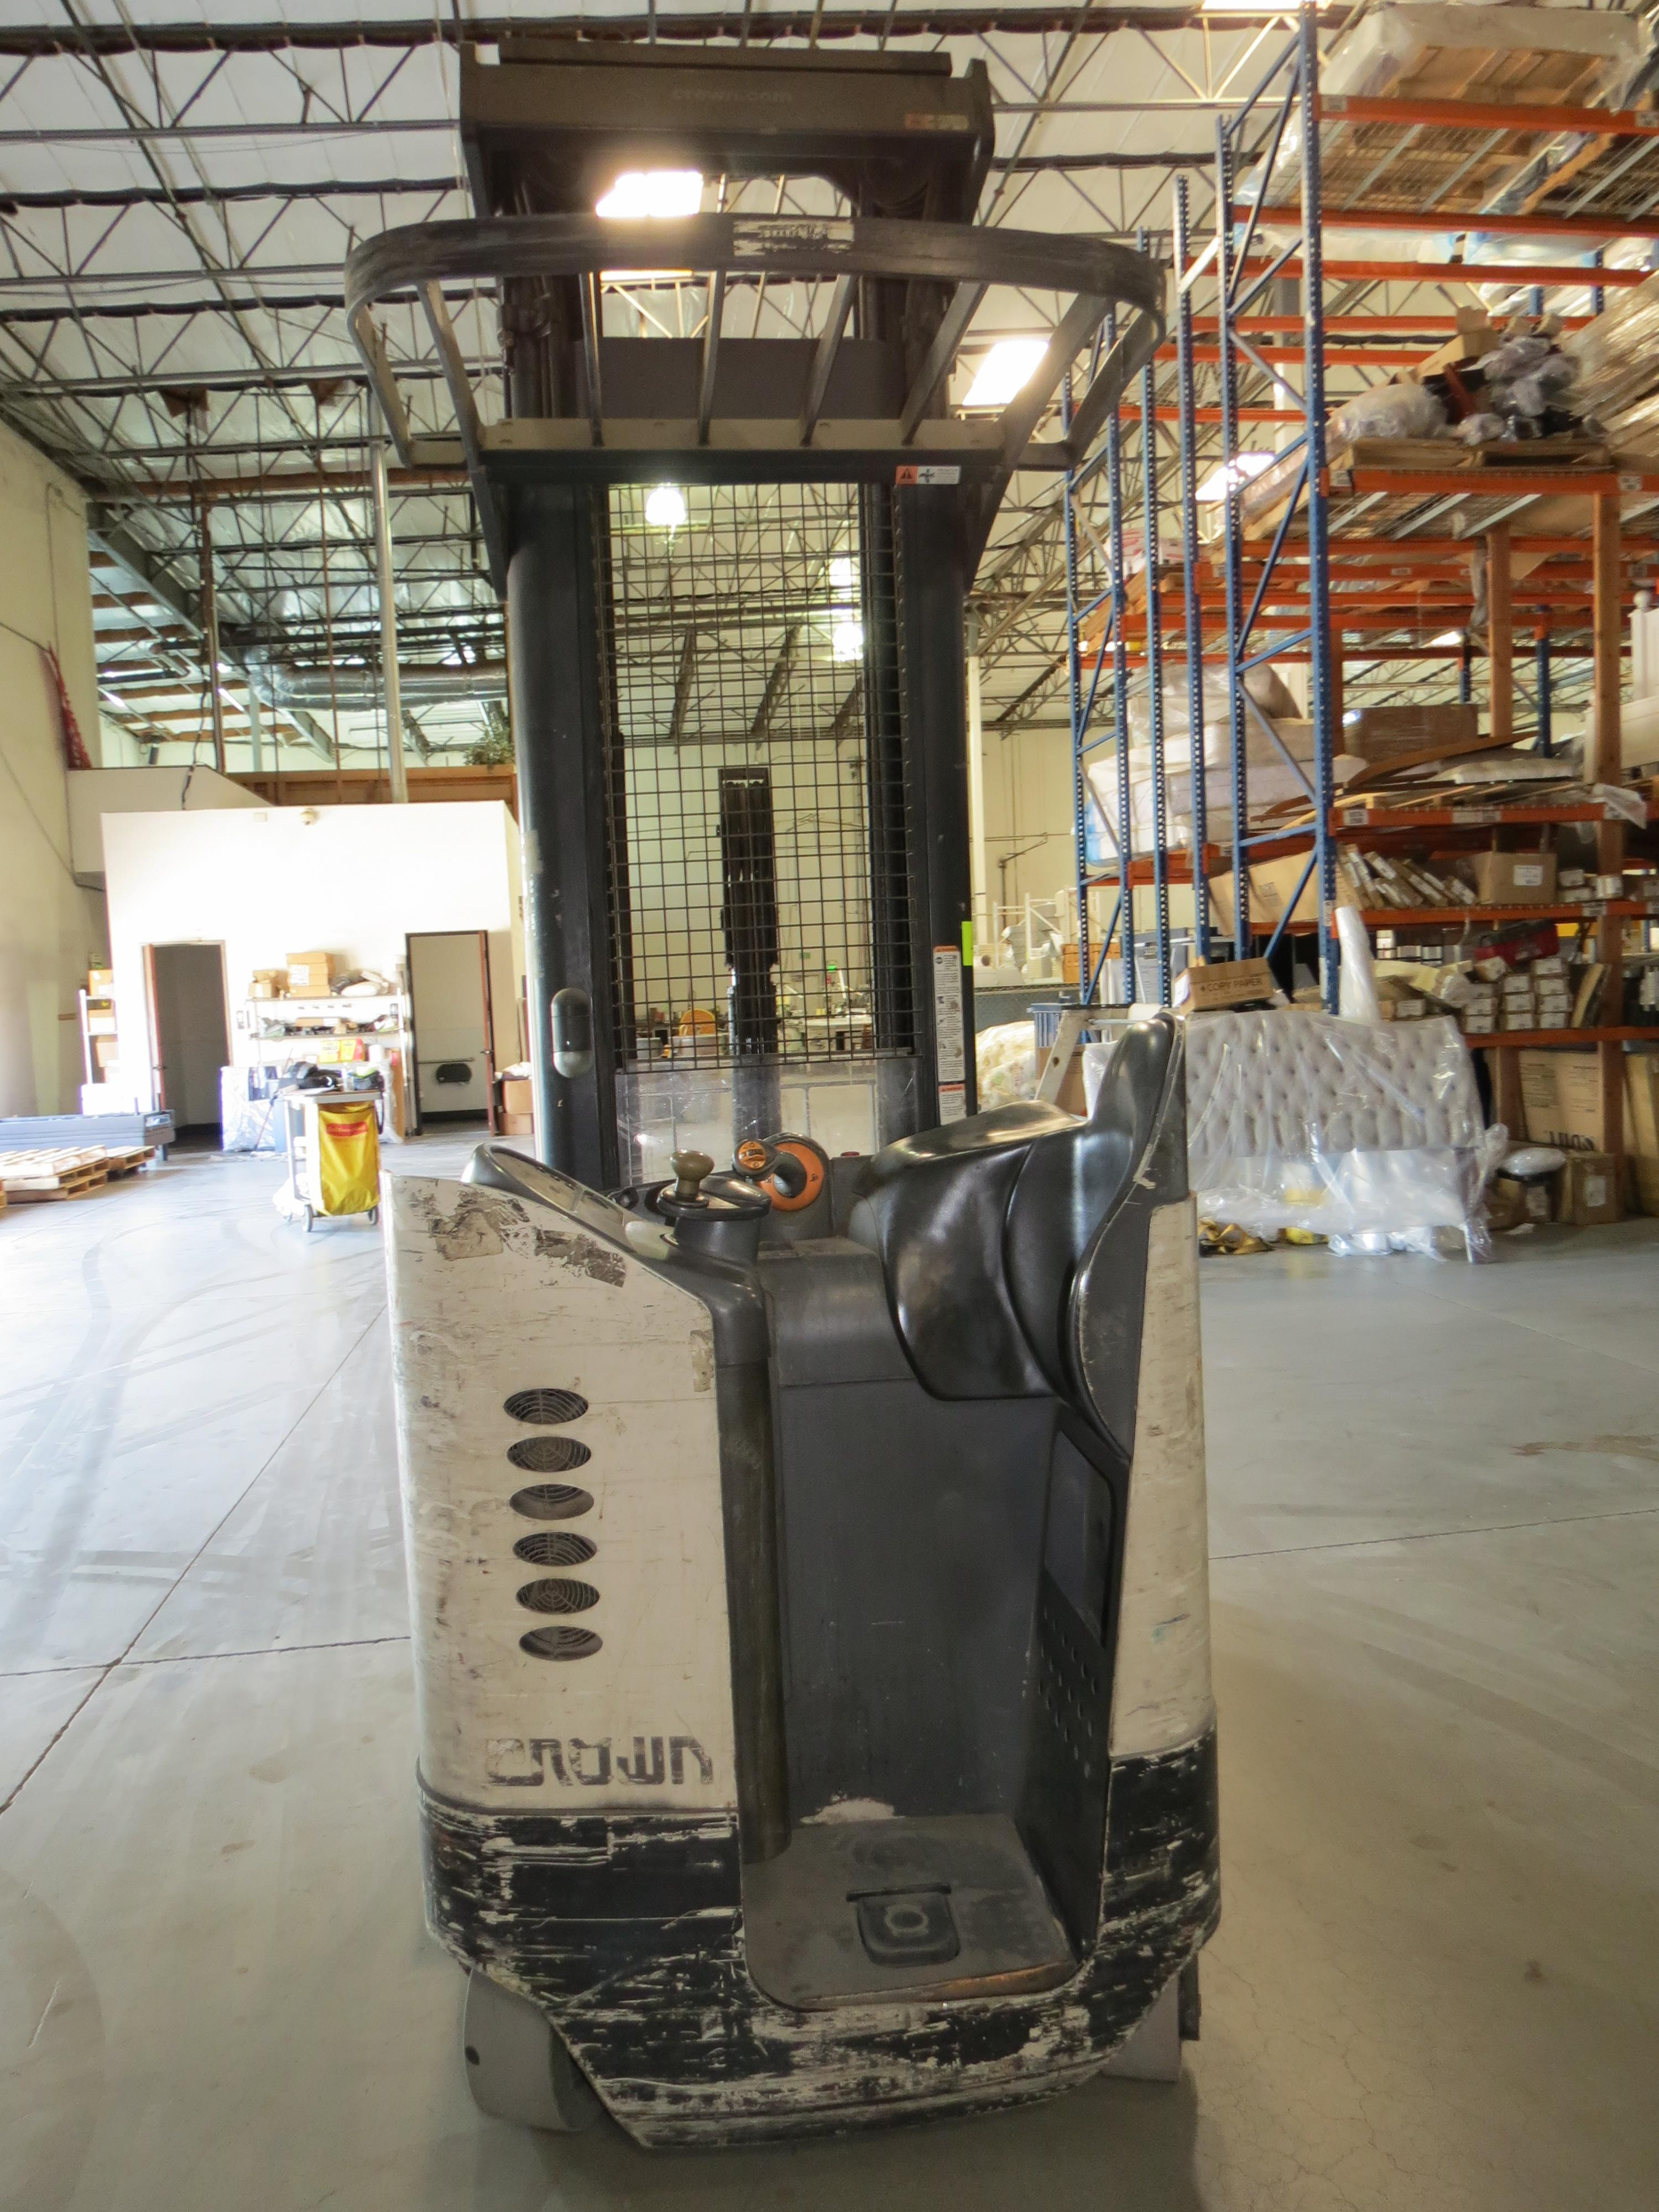 Crown RR 3-Stage Reach Electric Forklift 6860 Capacity SN:1A292256 With Legacy Power System - Image 3 of 4